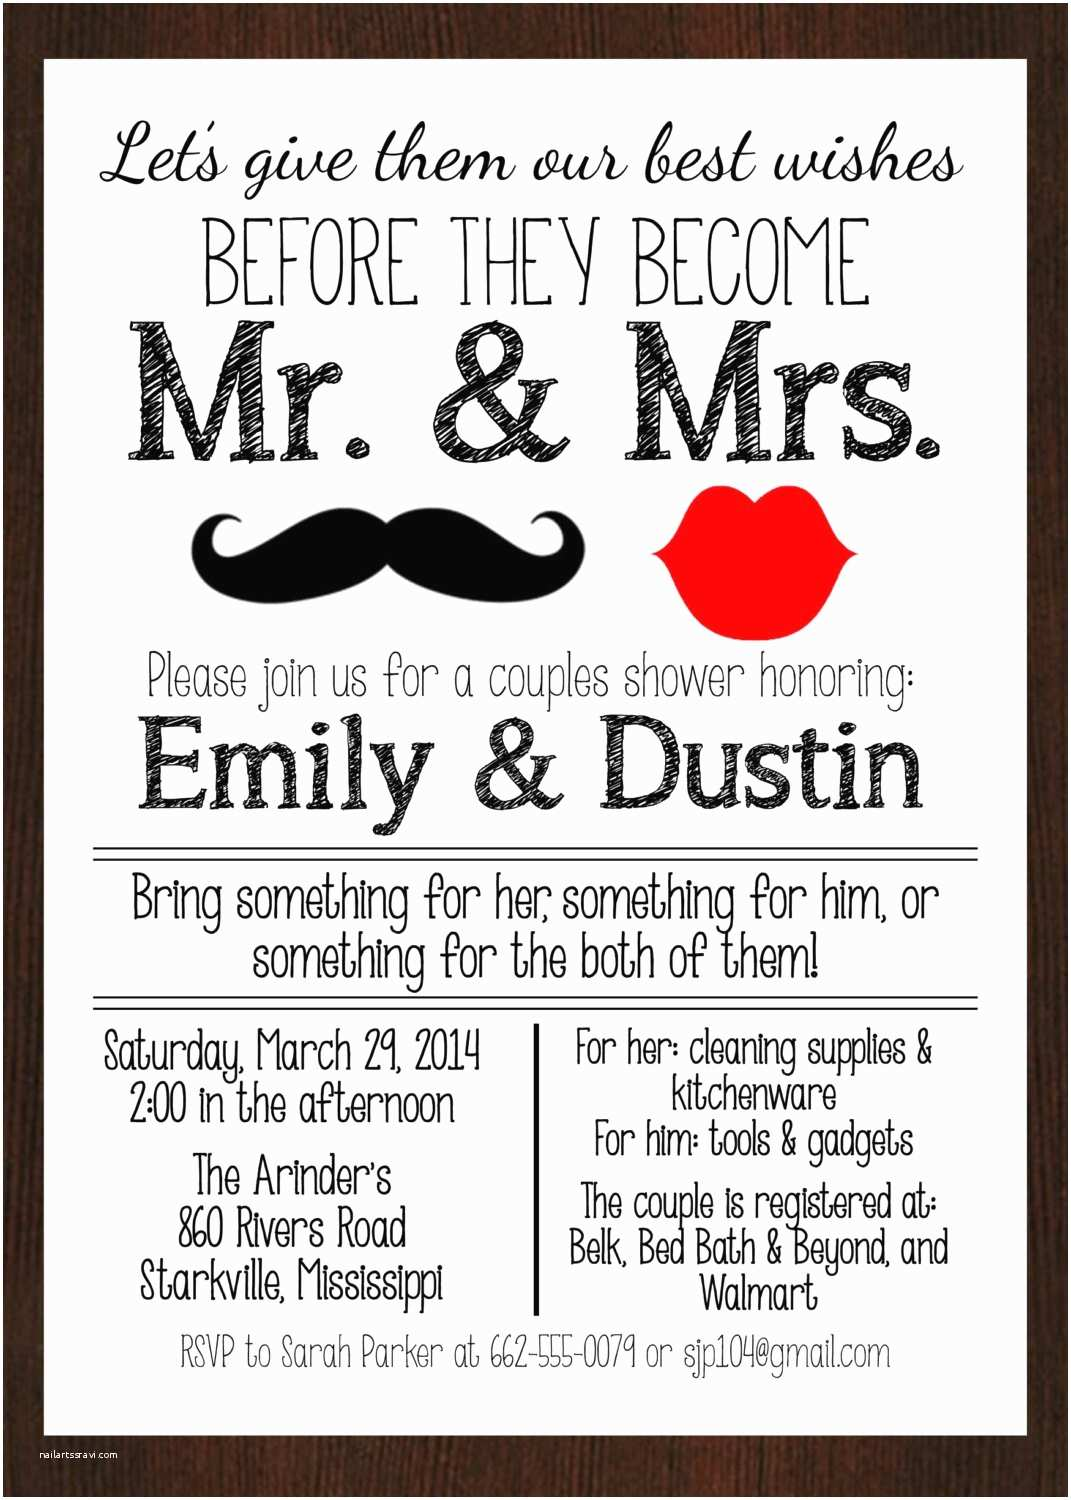 Couples Wedding Shower Invitations Templates Free Printable Mr & Mrs Couples Wedding Shower Invitation Lips